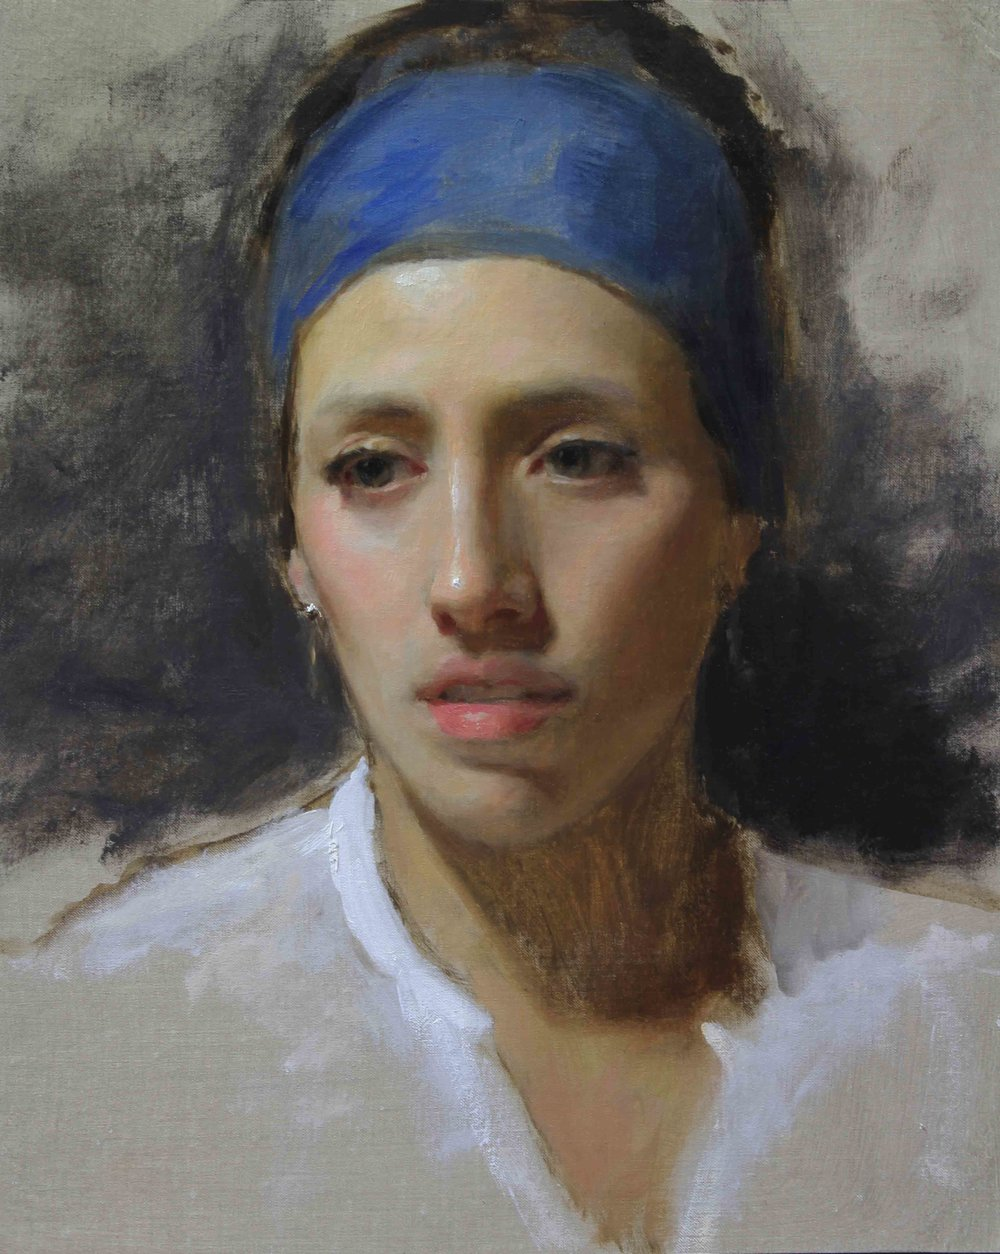 SOLD OUT - Email for waitlist - May 26-28 2018 (Memorial Day Weekend) - Raleigh, NC - 3-Day Portrait Painting Workshop